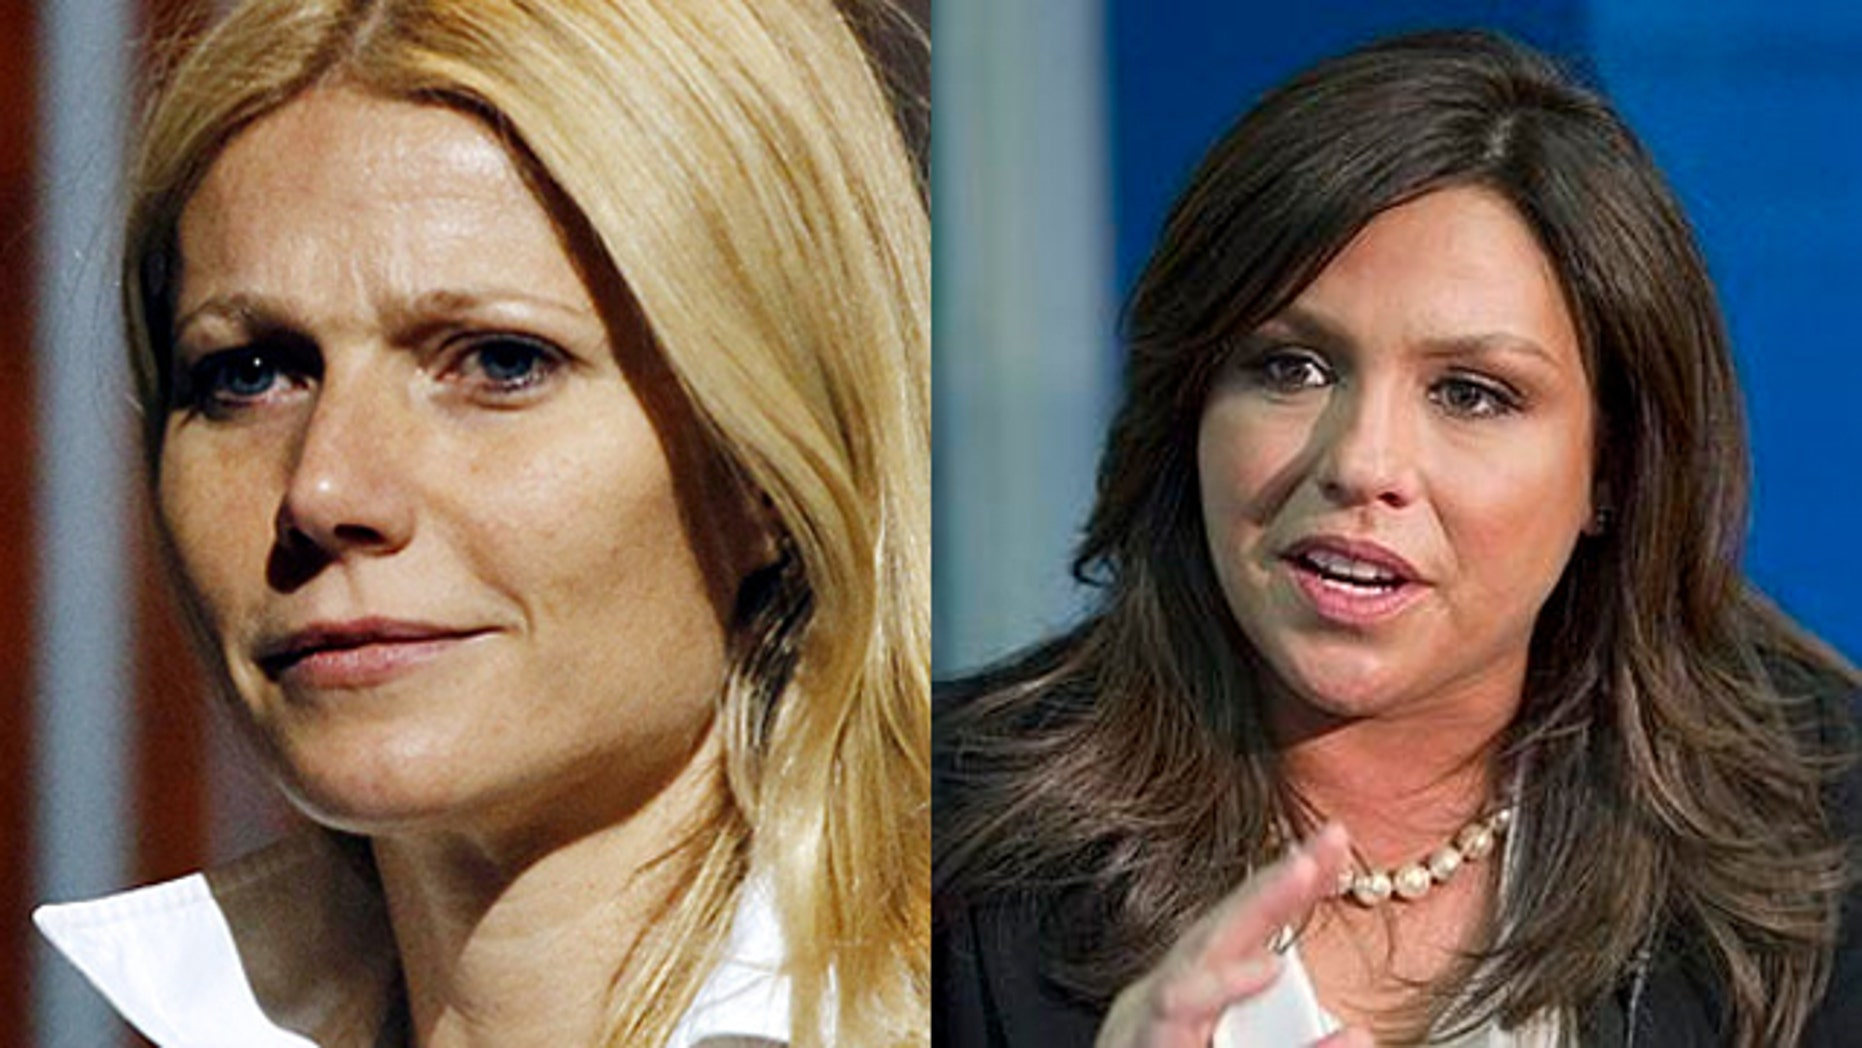 Gwyneth Paltrow Defends her cookbook on 'The Rachael Ray Show'